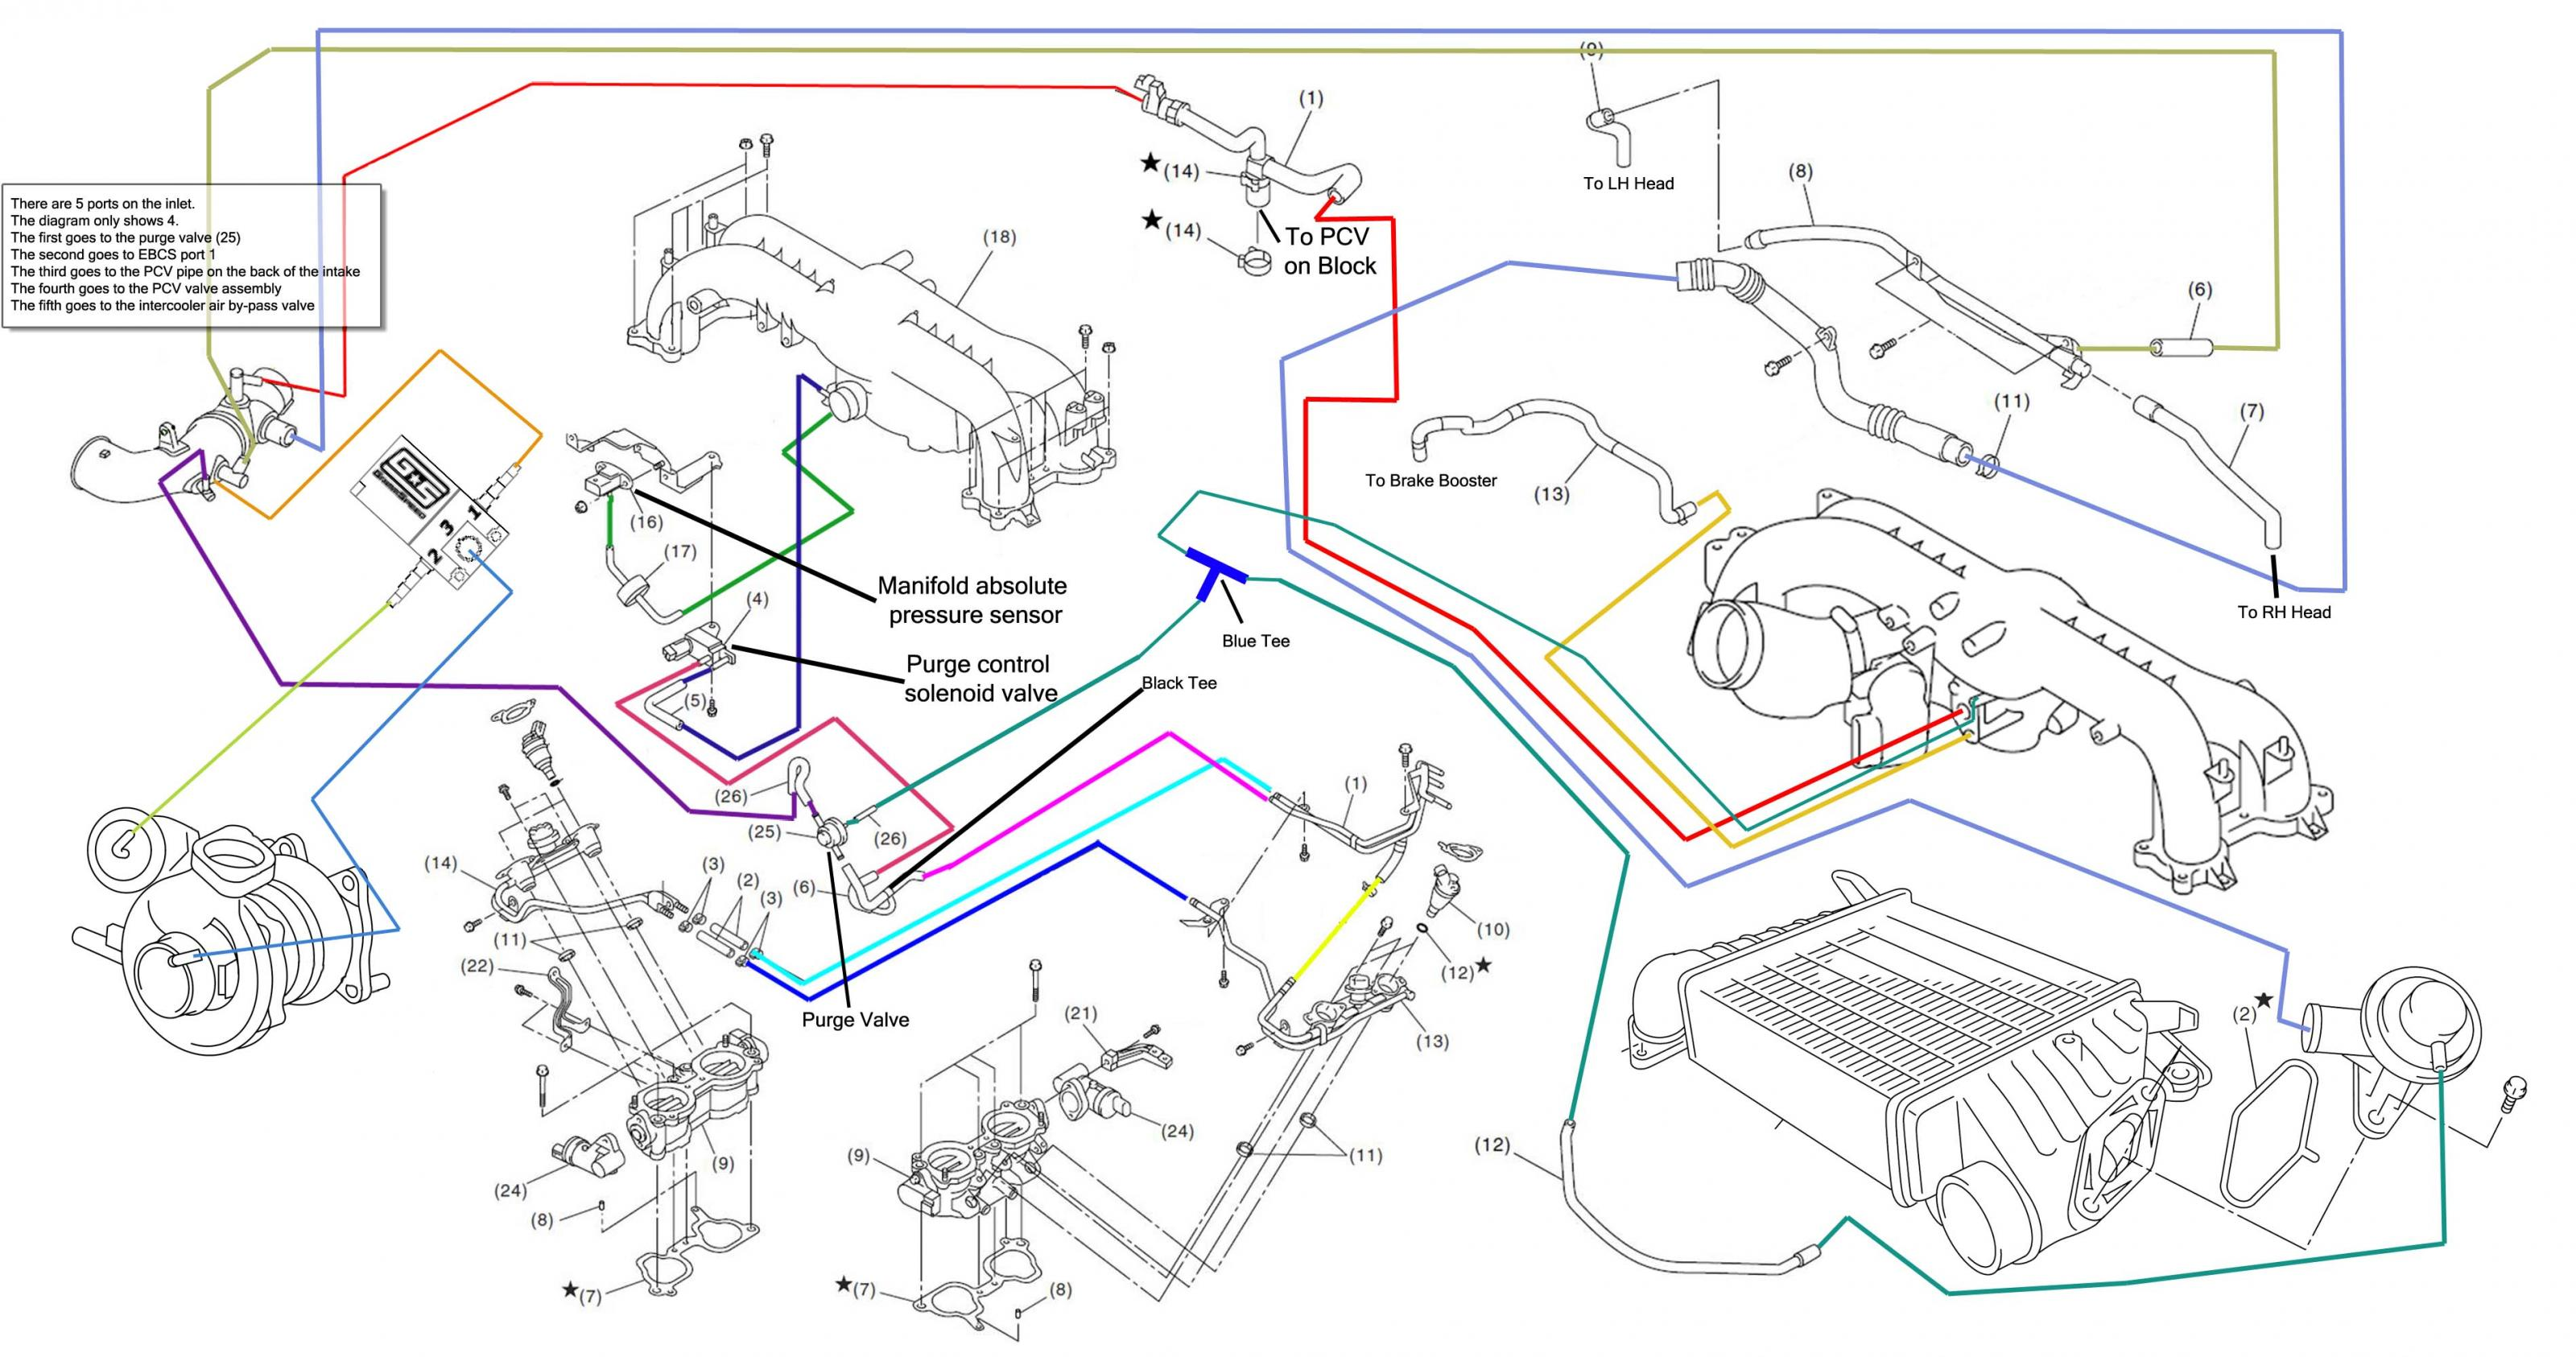 Ecu Wiring Schematic 99 Hyundai Elantra Opinions About Diagrams Automotive Rh Ogmconsulting Co 1998 98